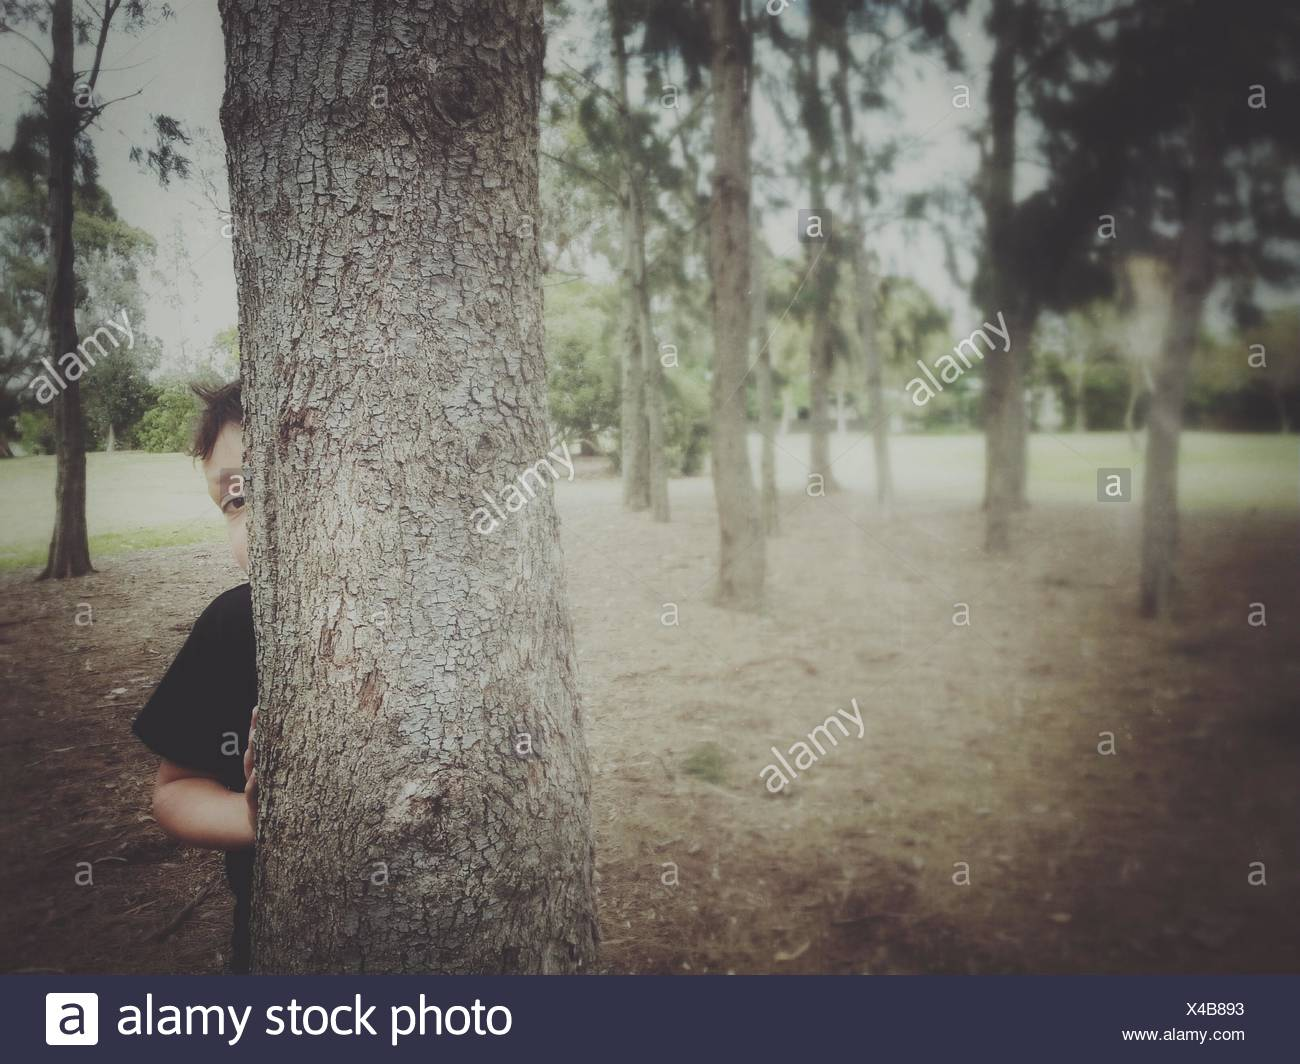 Boy hiding behind a tree - Stock Image